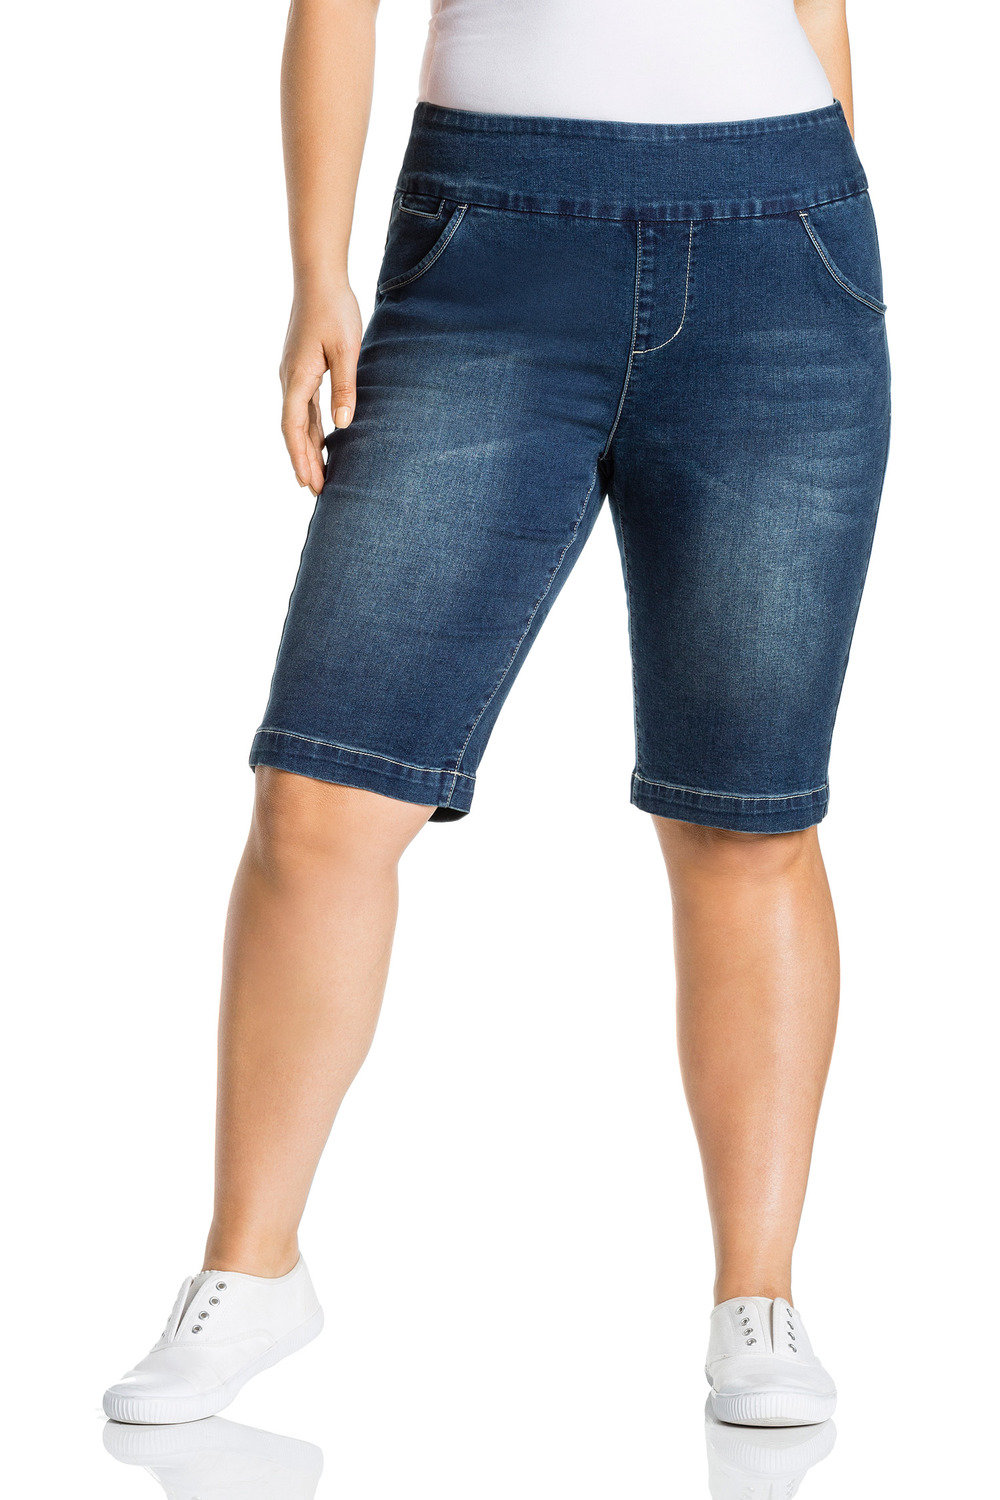 The 5 Brands With the Best Plus Size Denim Shorts | Who What